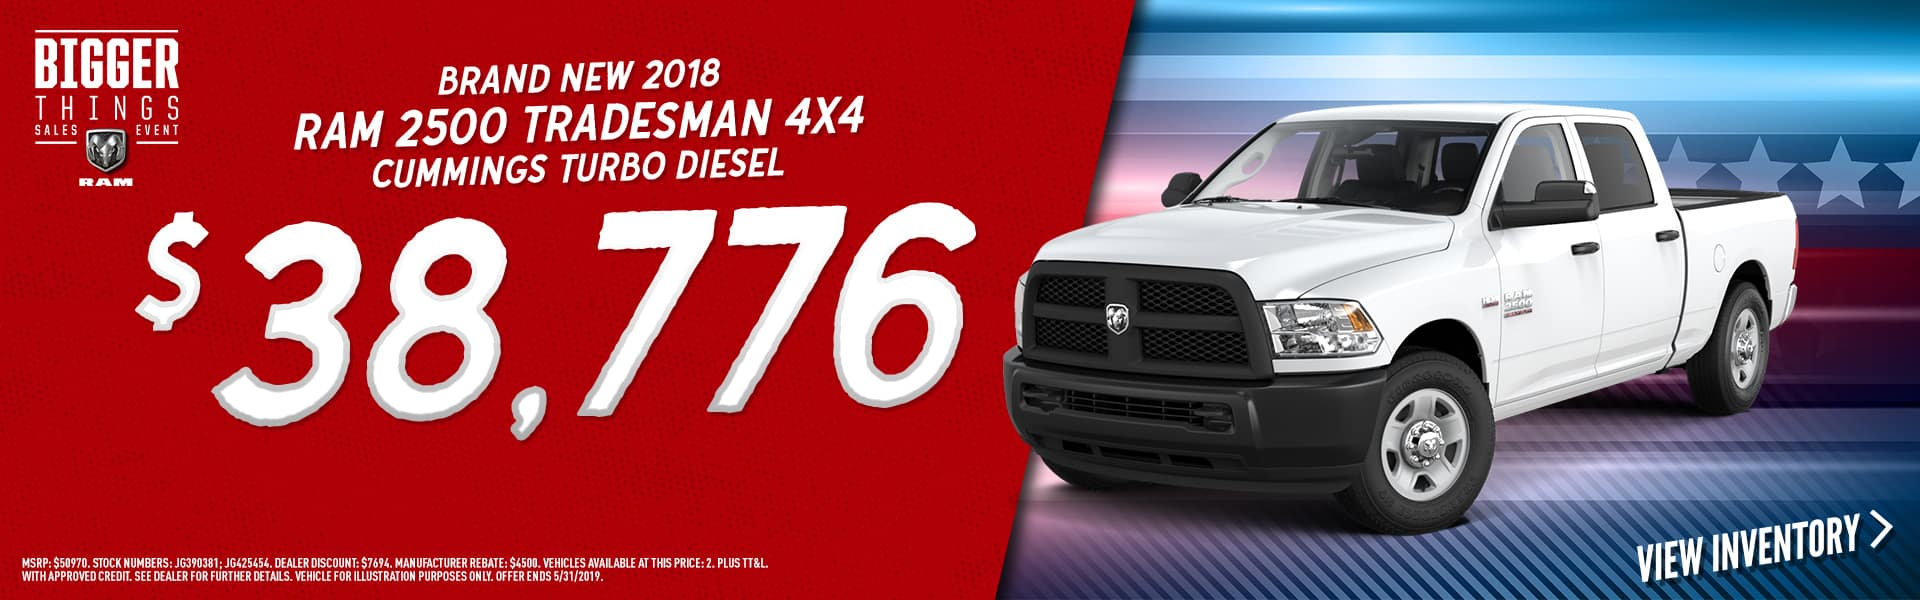 2018-ram-2500-tradesman-4by4-cummings-turbo-diesel-tulsa